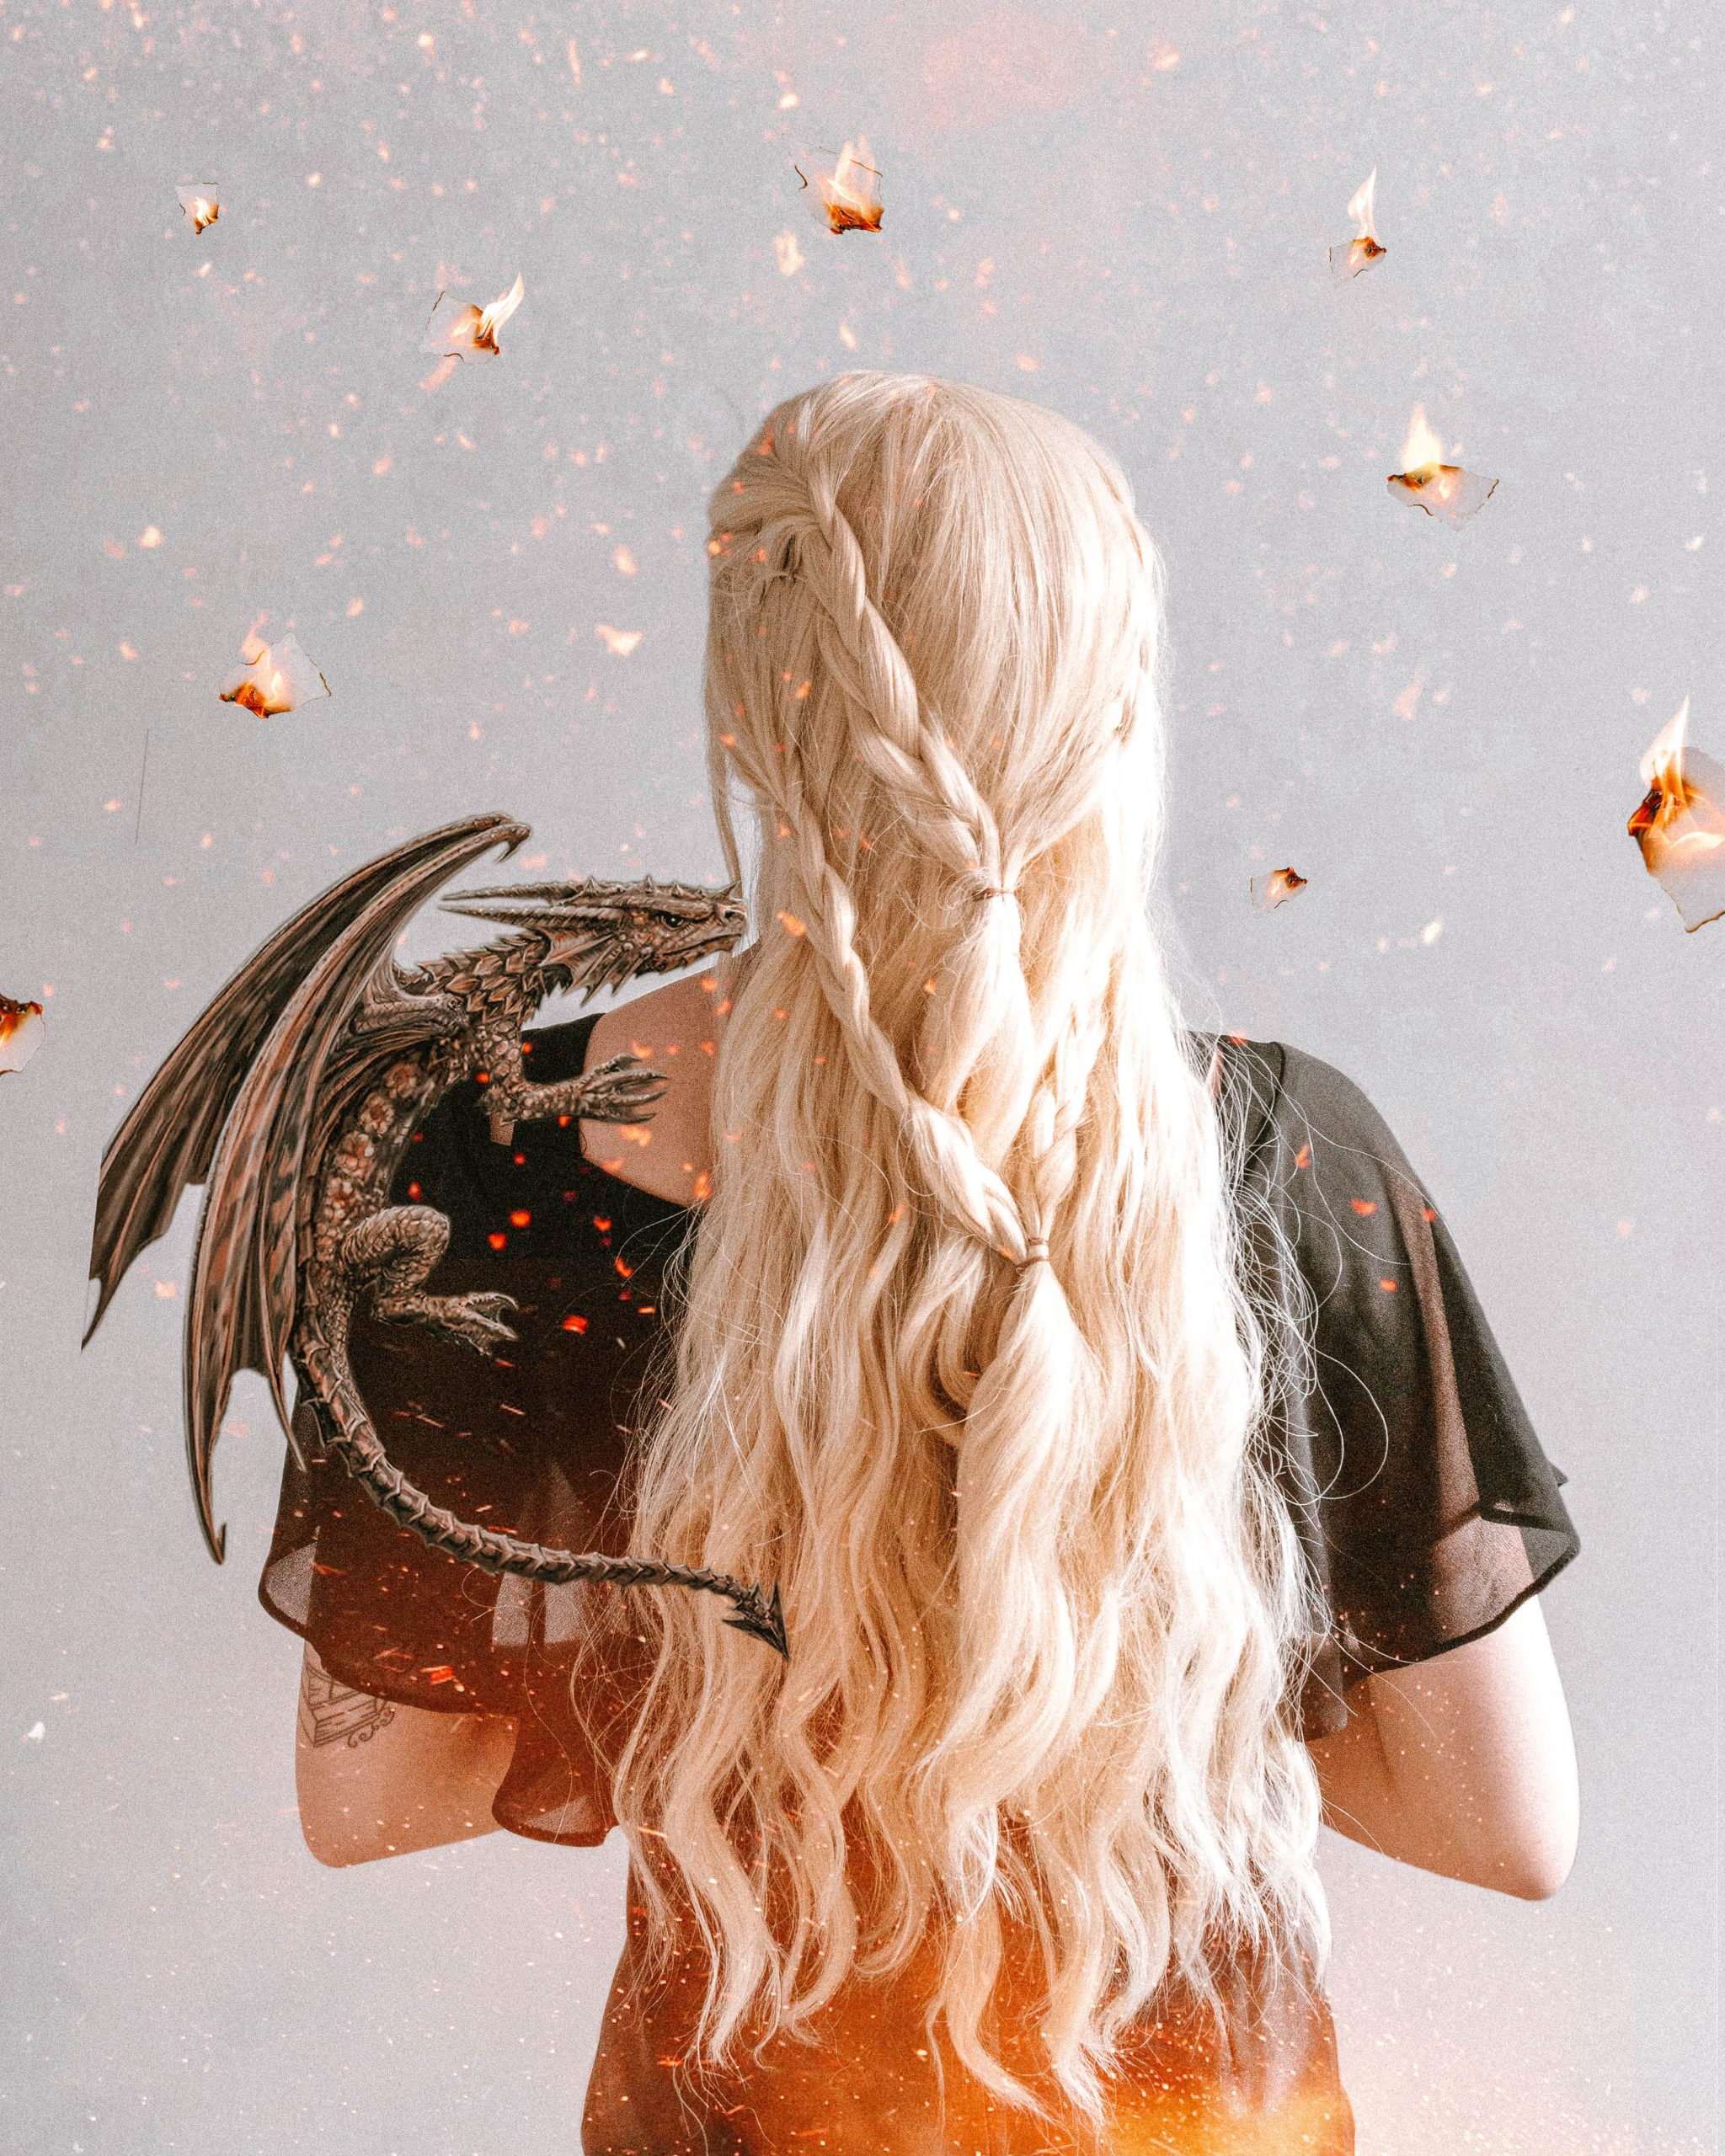 Game of thrones picture featuring Daenerys